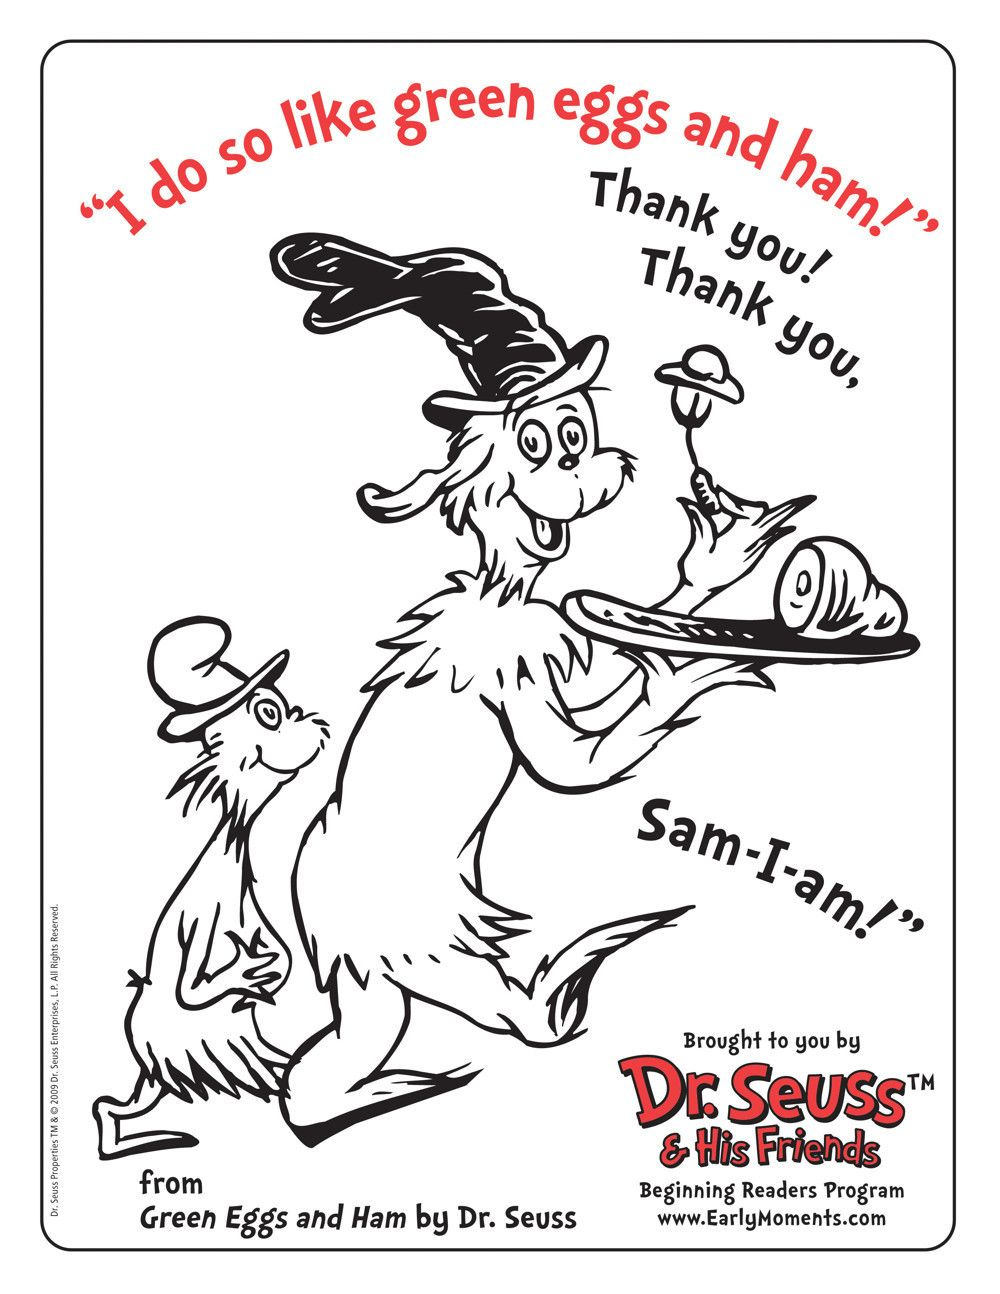 Dr Seuss And Friends Coloring Contest